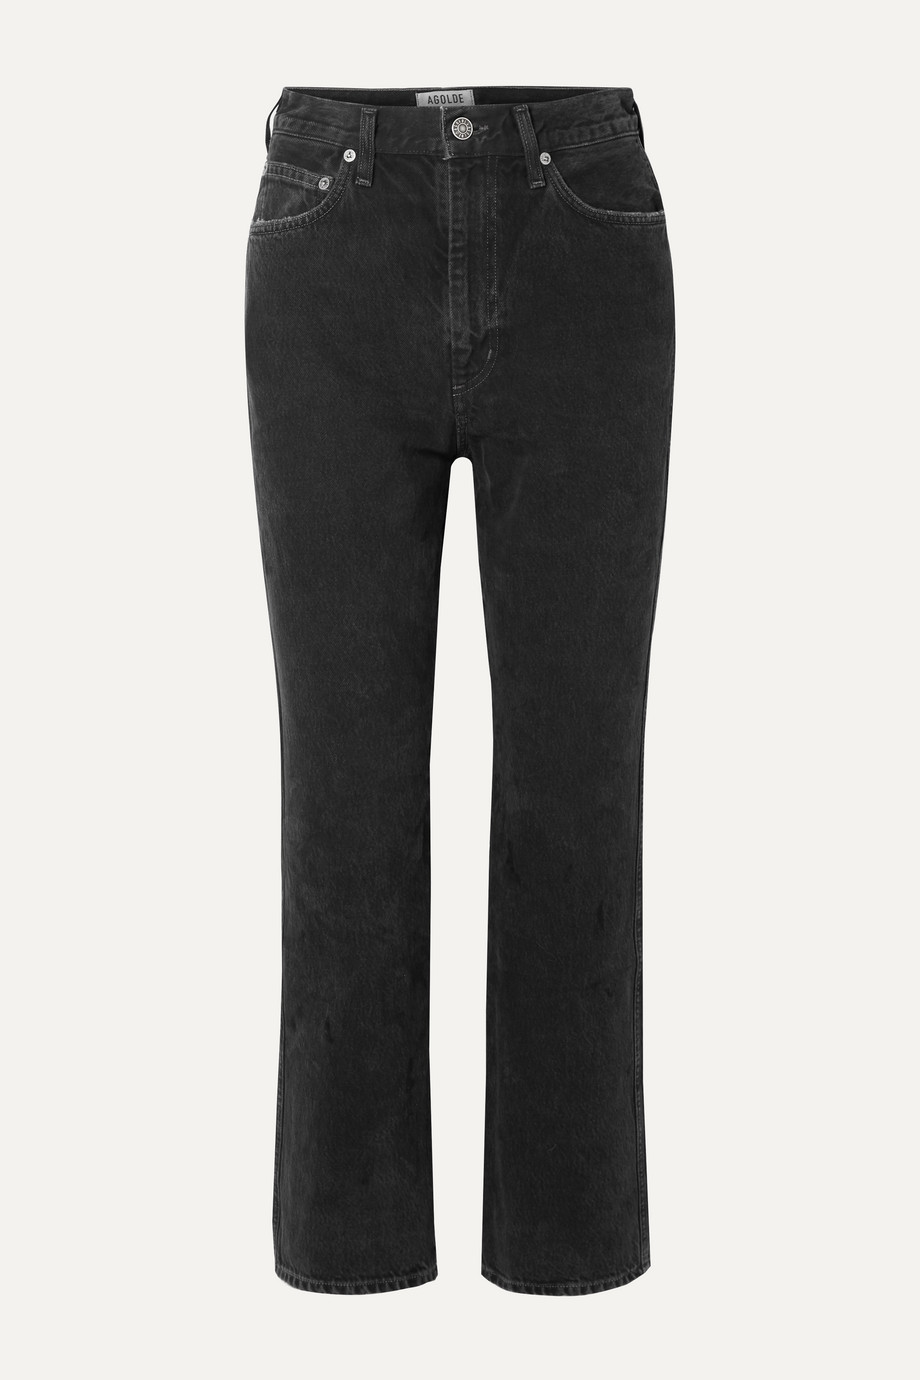 AGOLDE Pinch Waist cropped high-rise flared jeans